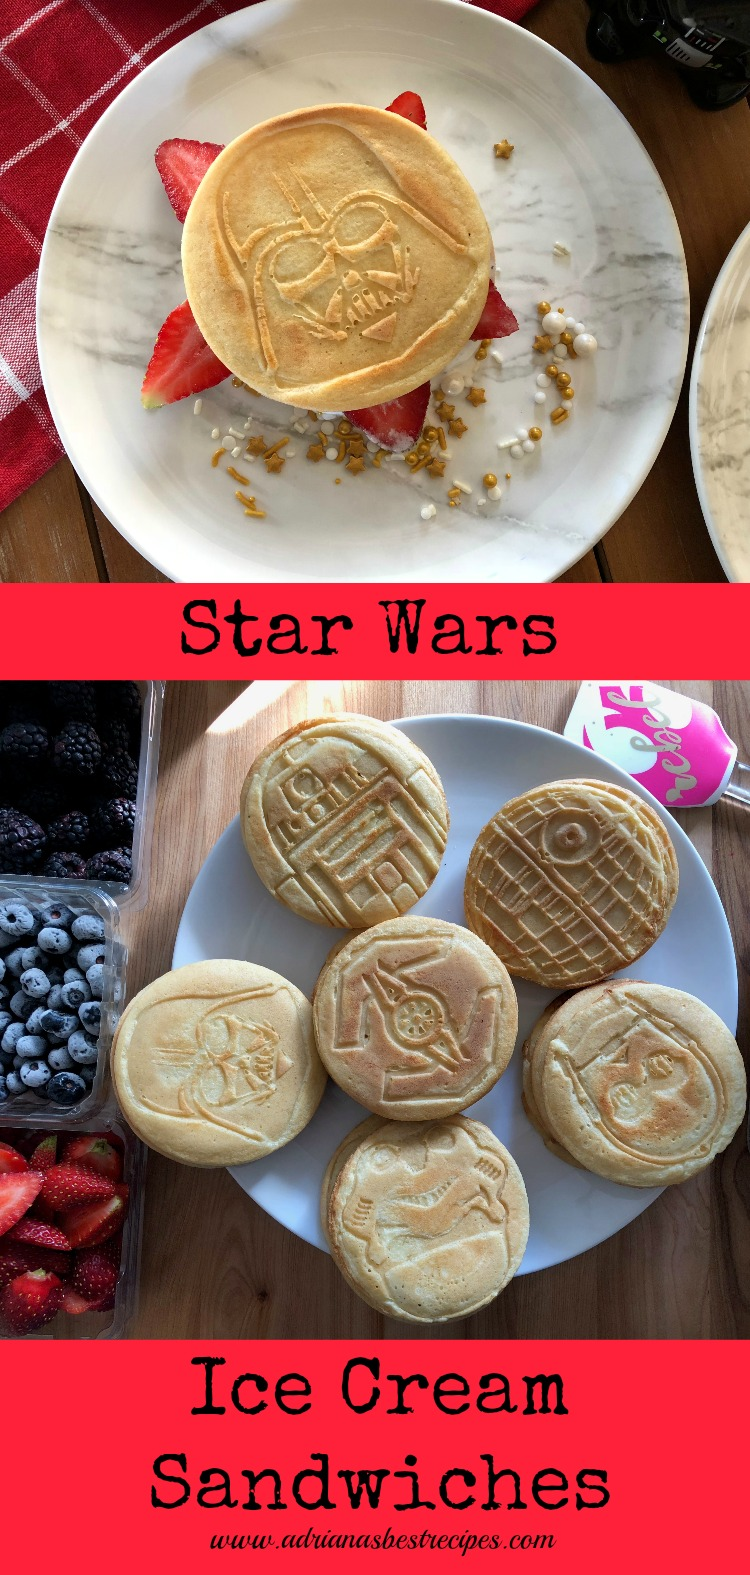 May the Fourth Be with You All! We love Star Wars and have been celebrating May the Fourth for many years now. We just started partnering with Teddy The Dog and they have a super cool tee for Star Wars and dog fans. Which is perfect for us as we love dogs too! And do not forget to enjoy this delicious Star Wars ice cream sandwiches to celebrate this special day.